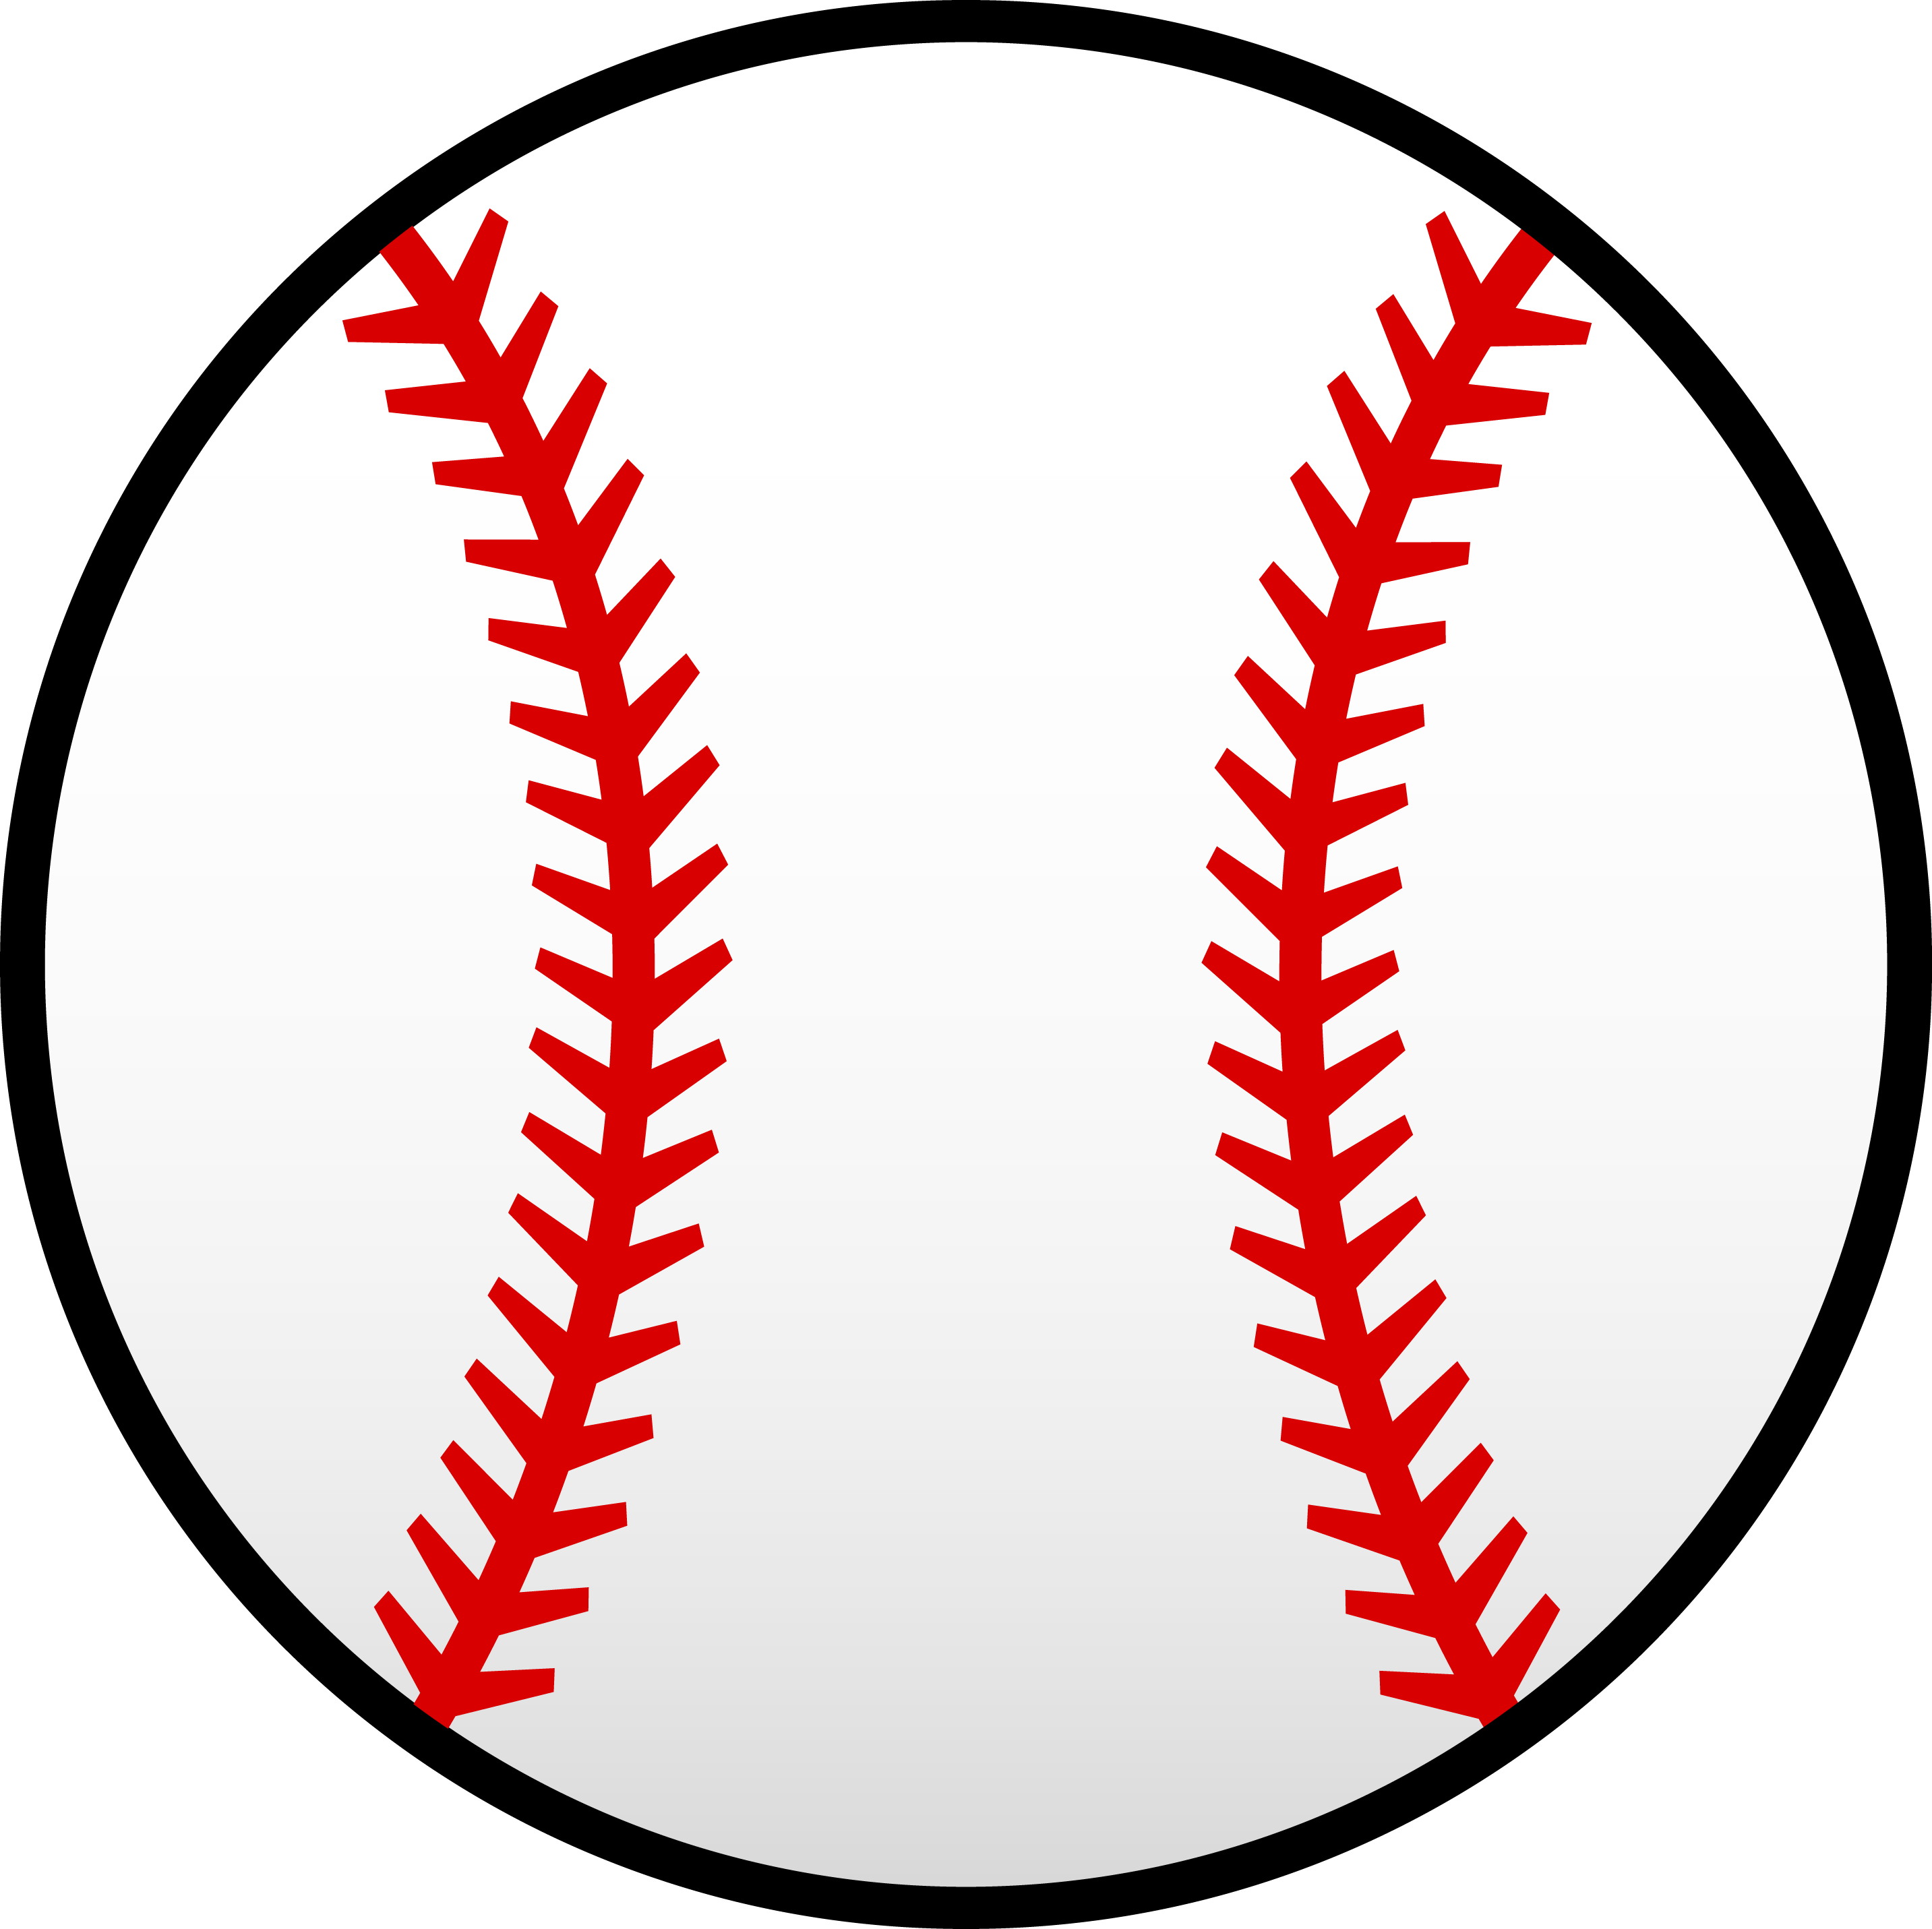 baseball silhouette vector free at getdrawings com free for rh getdrawings com baseball vector files baseball vector logo